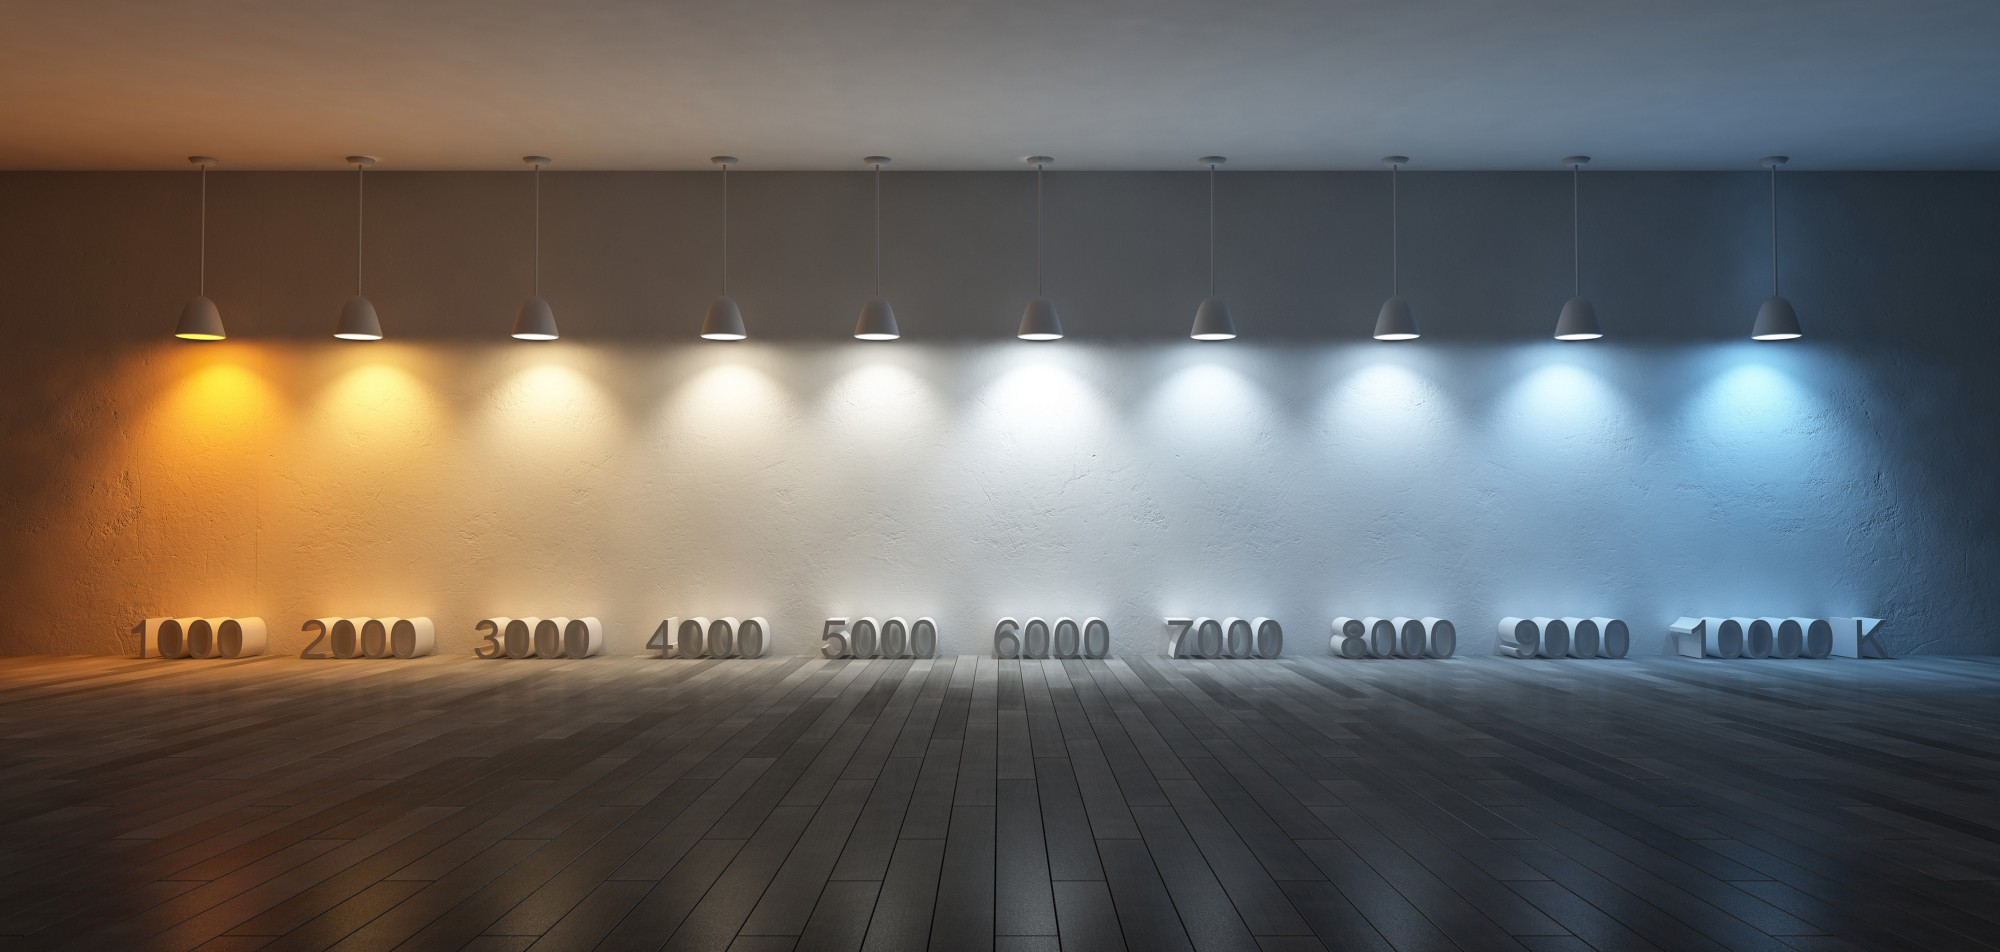 An Ilration Of Cct Values In Degrees Kelvin Most Indoor Lighting Products Produce Light The Range 1800 K To 6500